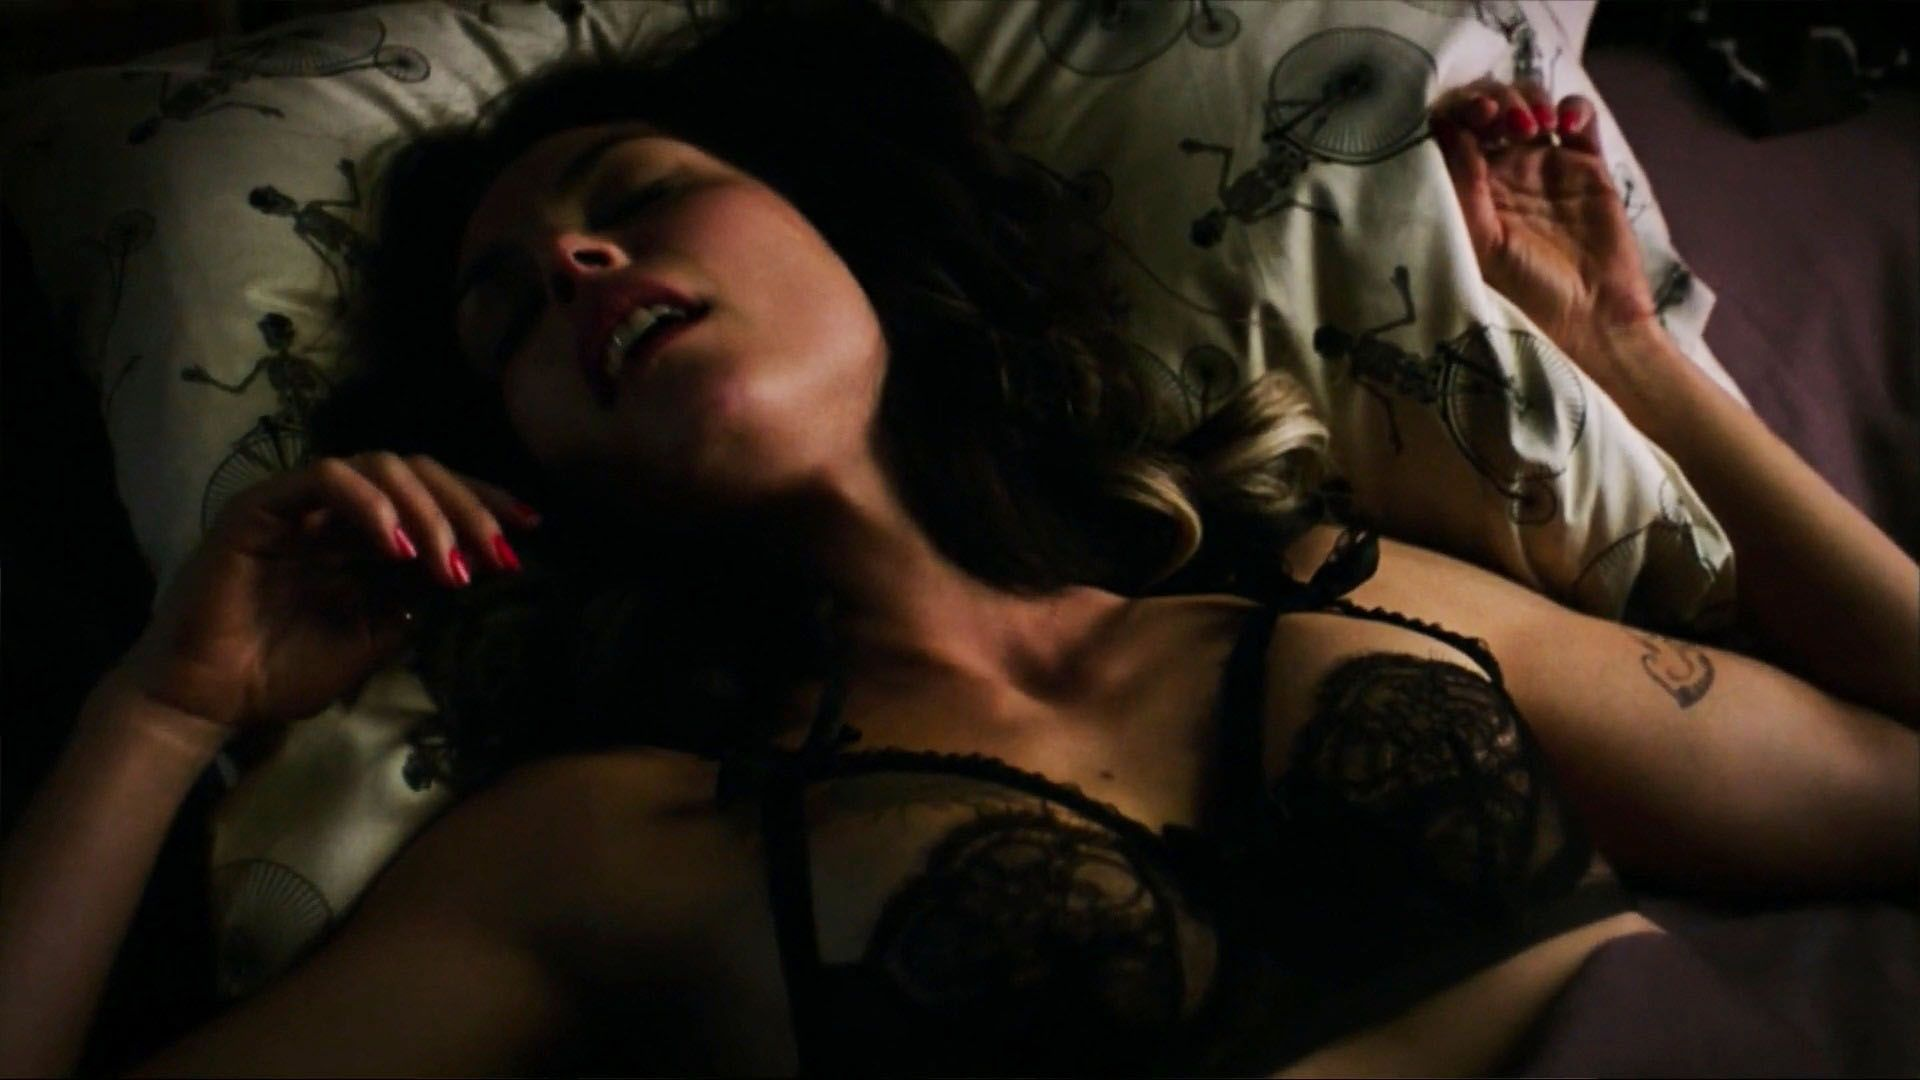 Morena Baccarin sexy nude picture